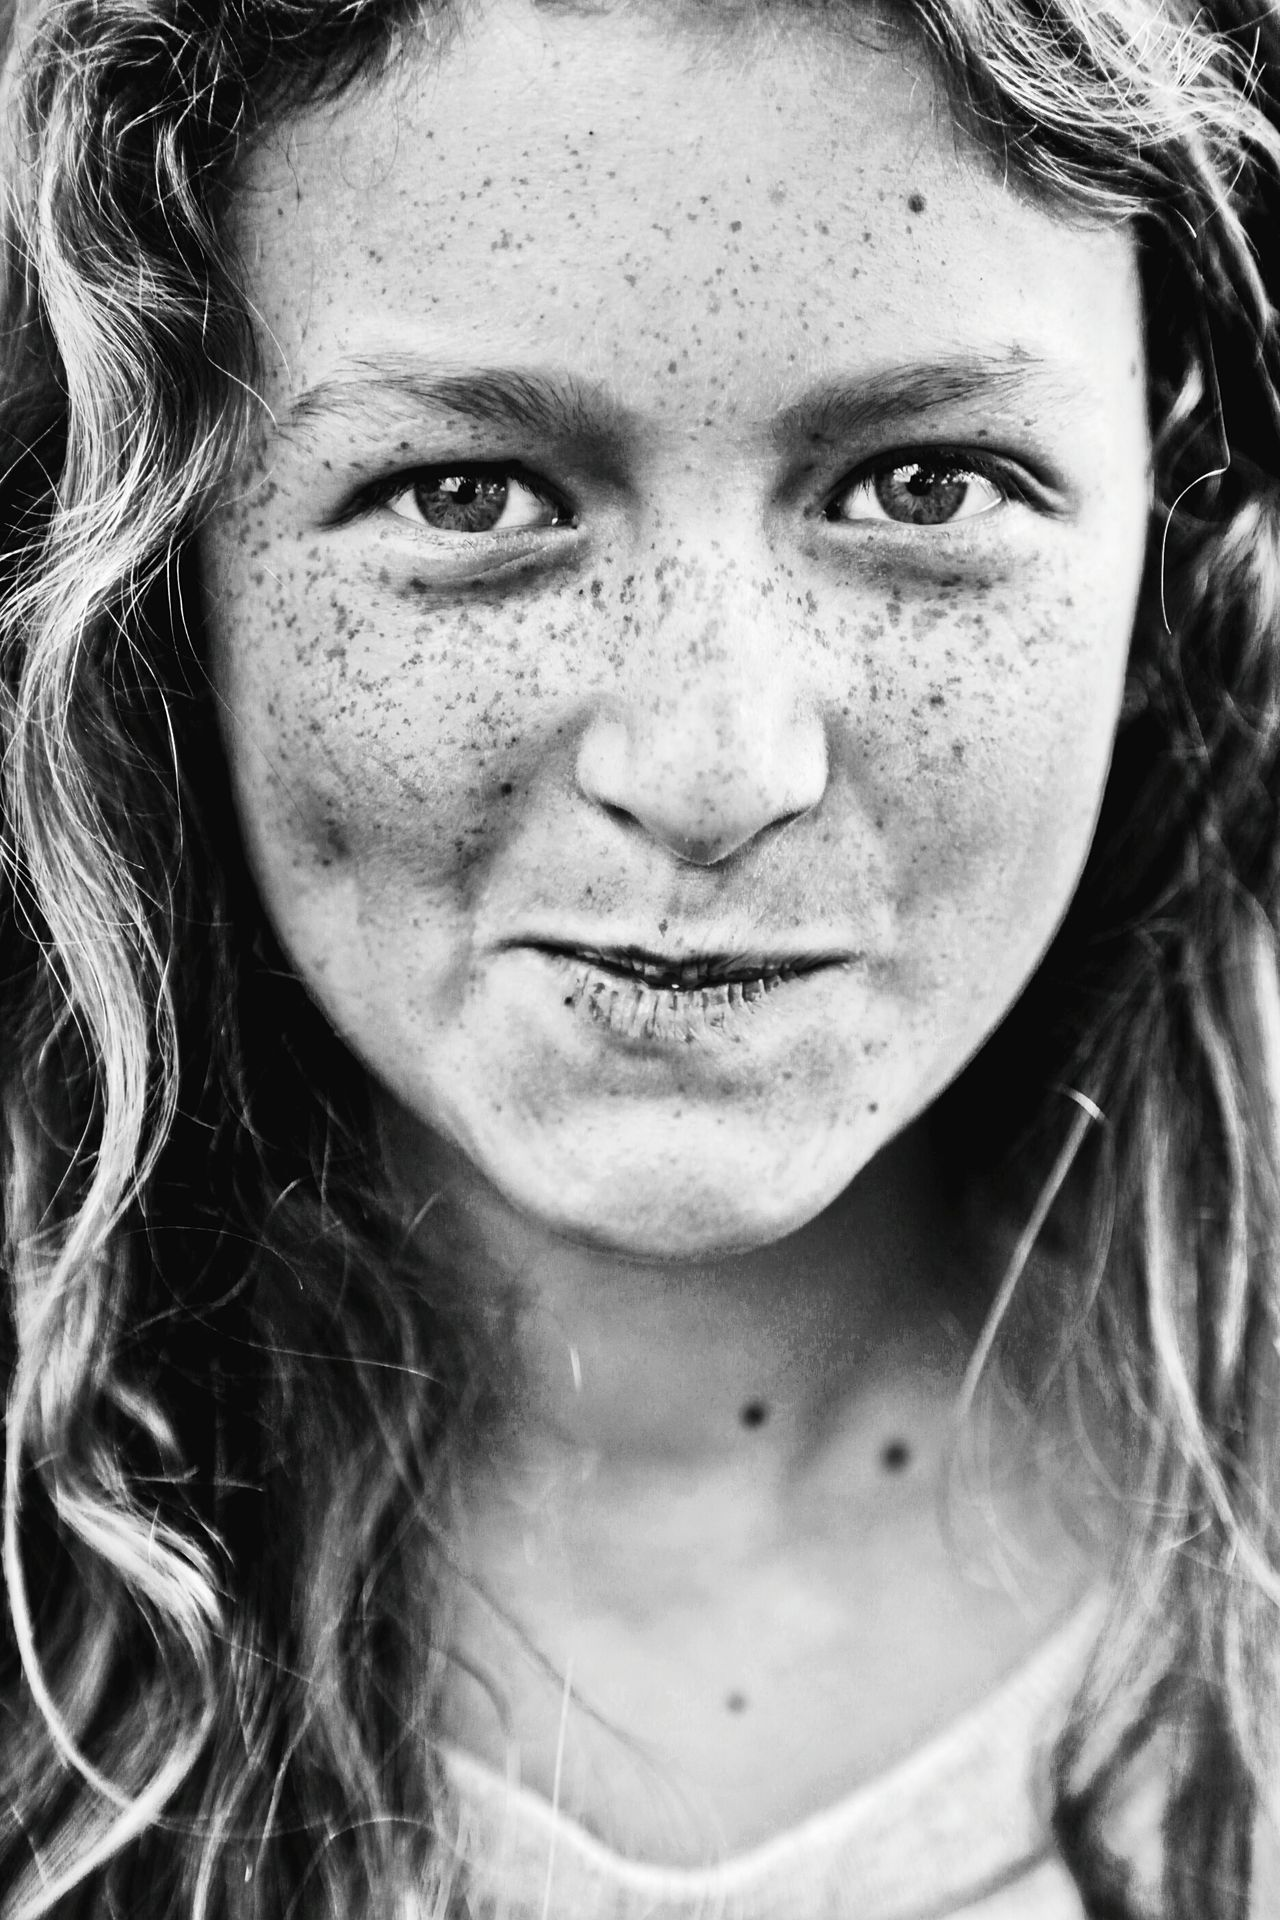 Portrait Close-up Child Girl Freckle Freckles Freckled Girl Freckle Face Headshot One Person One Girl Only Real People People Looking At Camera Black & White Black And White Blackandwhite Beauty Looking At Camera Human Face Expression EyeEmNewHere Resist Art Is Everywhere Fresh on Market 2017 The Portraitist - 2017 EyeEm Awards